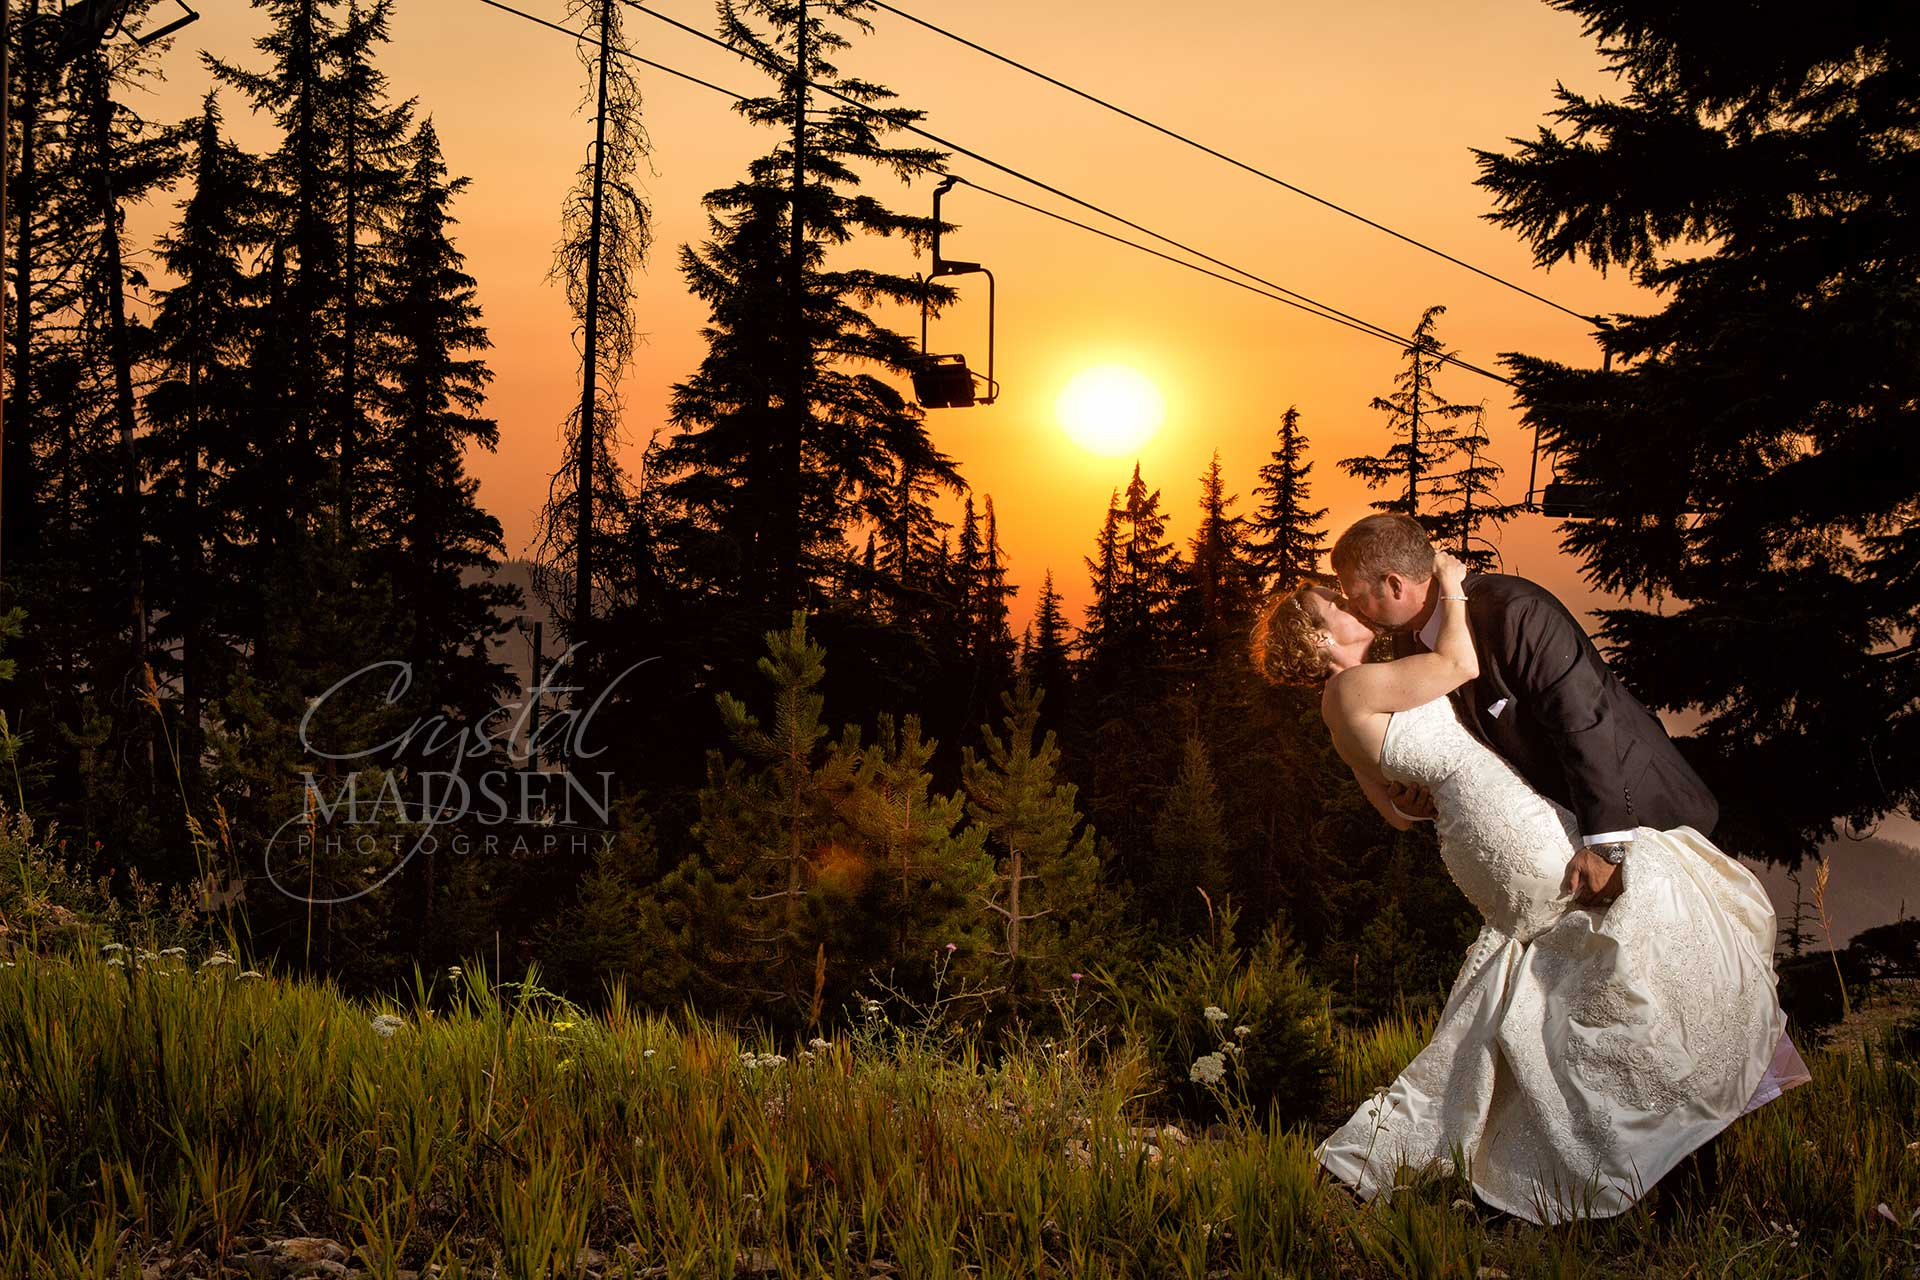 A gorgeous sunset is the backdrop for this romantic wedding photo on top of Silver Mountain